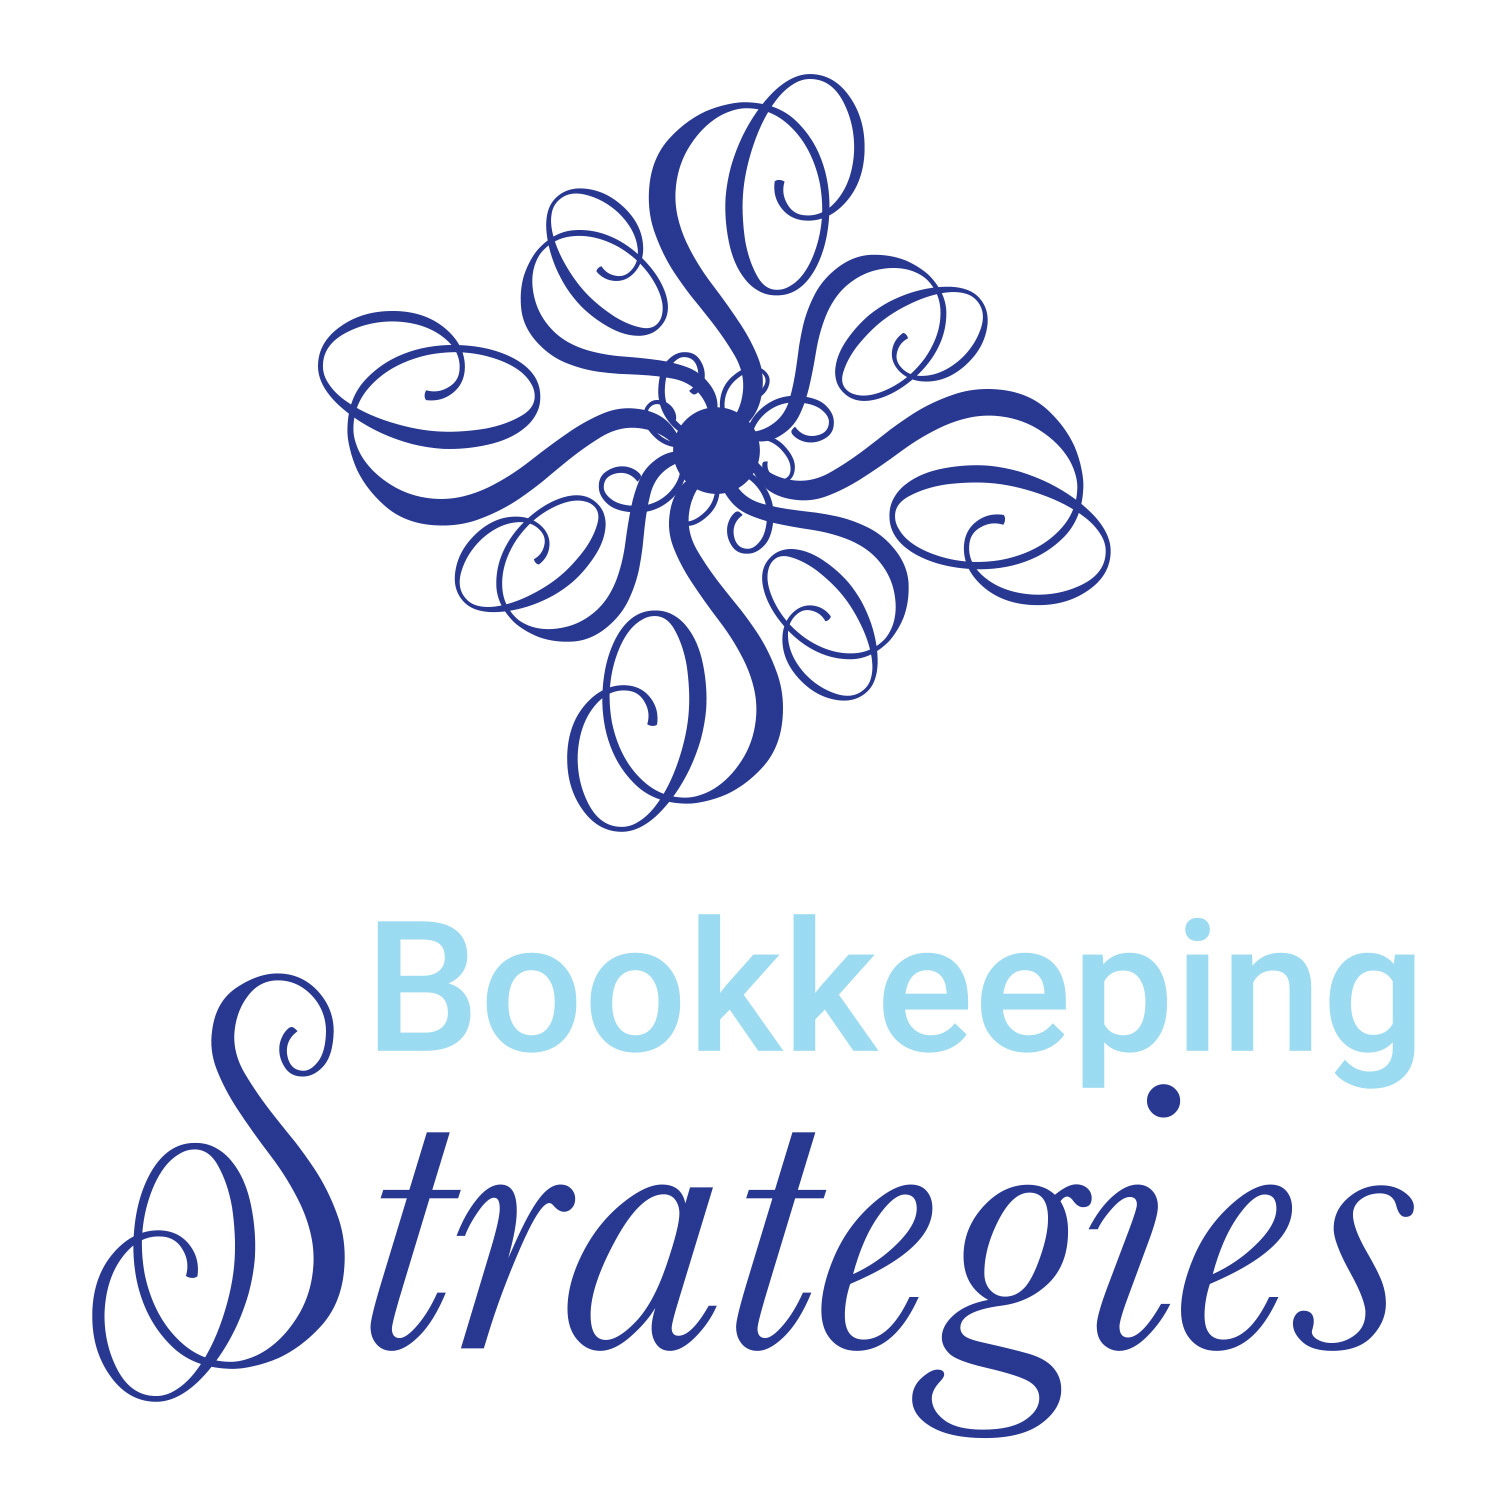 Bookkeeping Strategies - Bend, OR 97702 - (541)797-2180 | ShowMeLocal.com